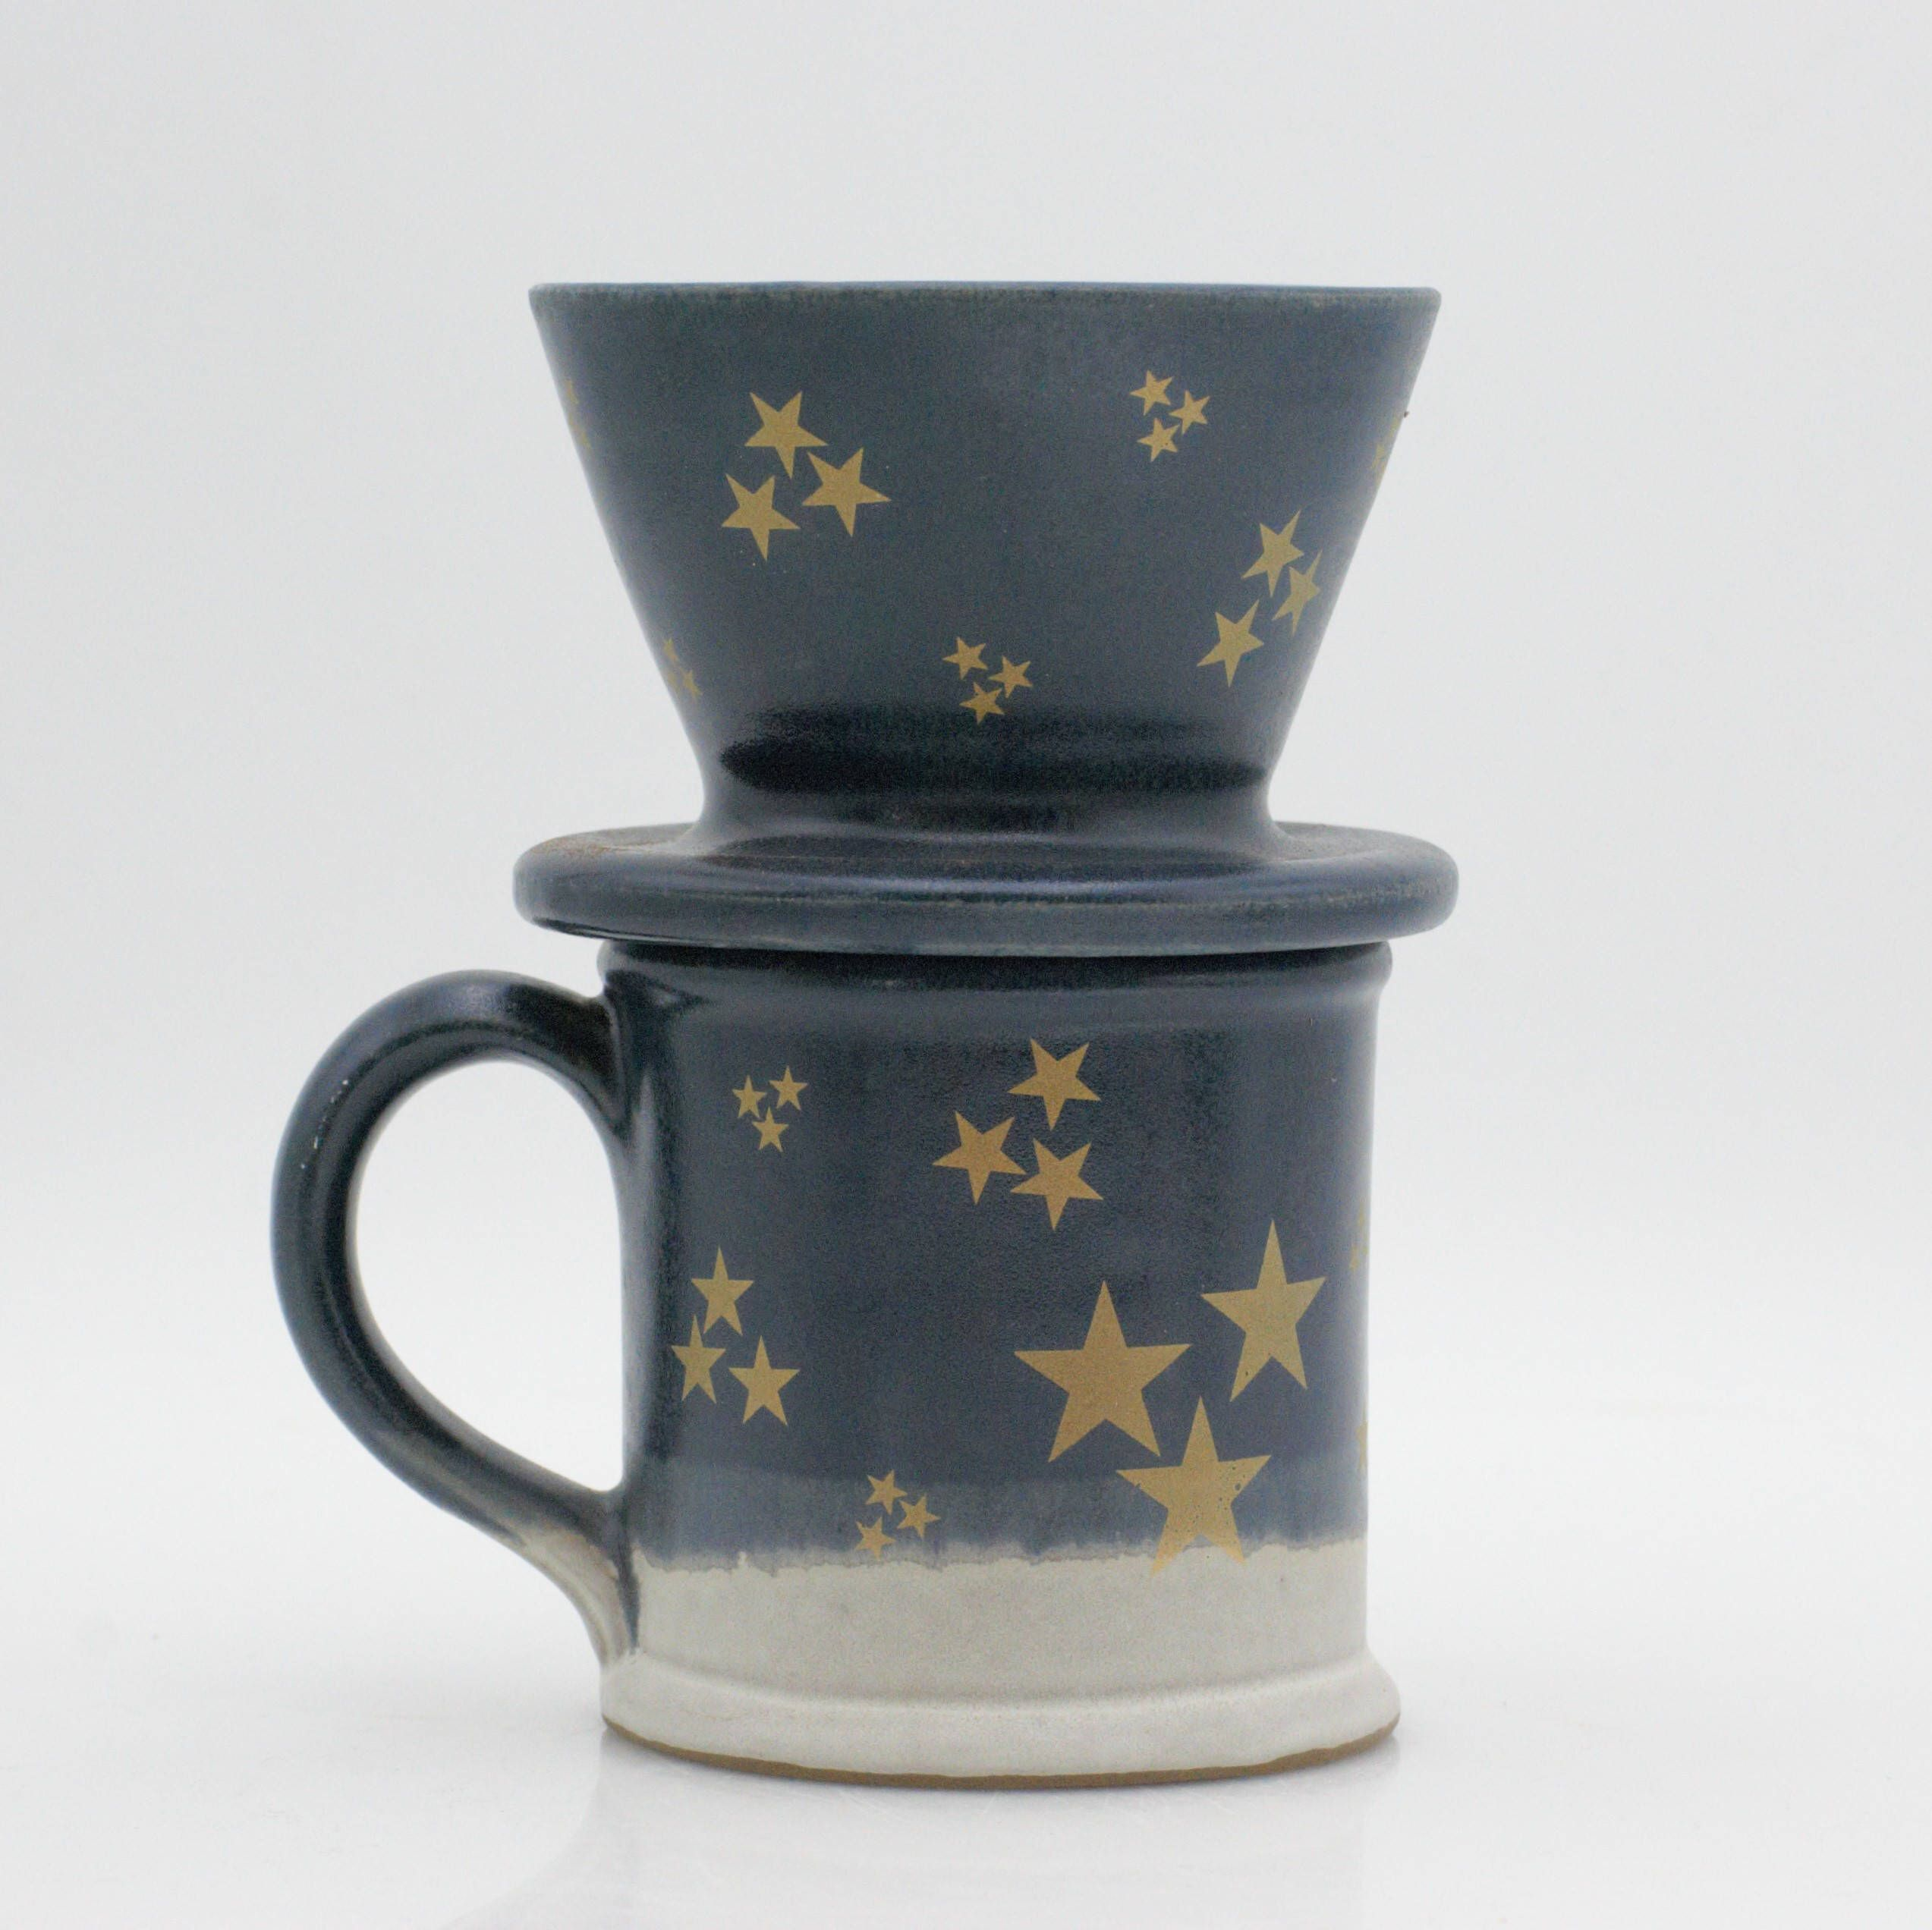 Hello Gorgeous Gold Rimmed Coffee Mug The American Hollow Mugs